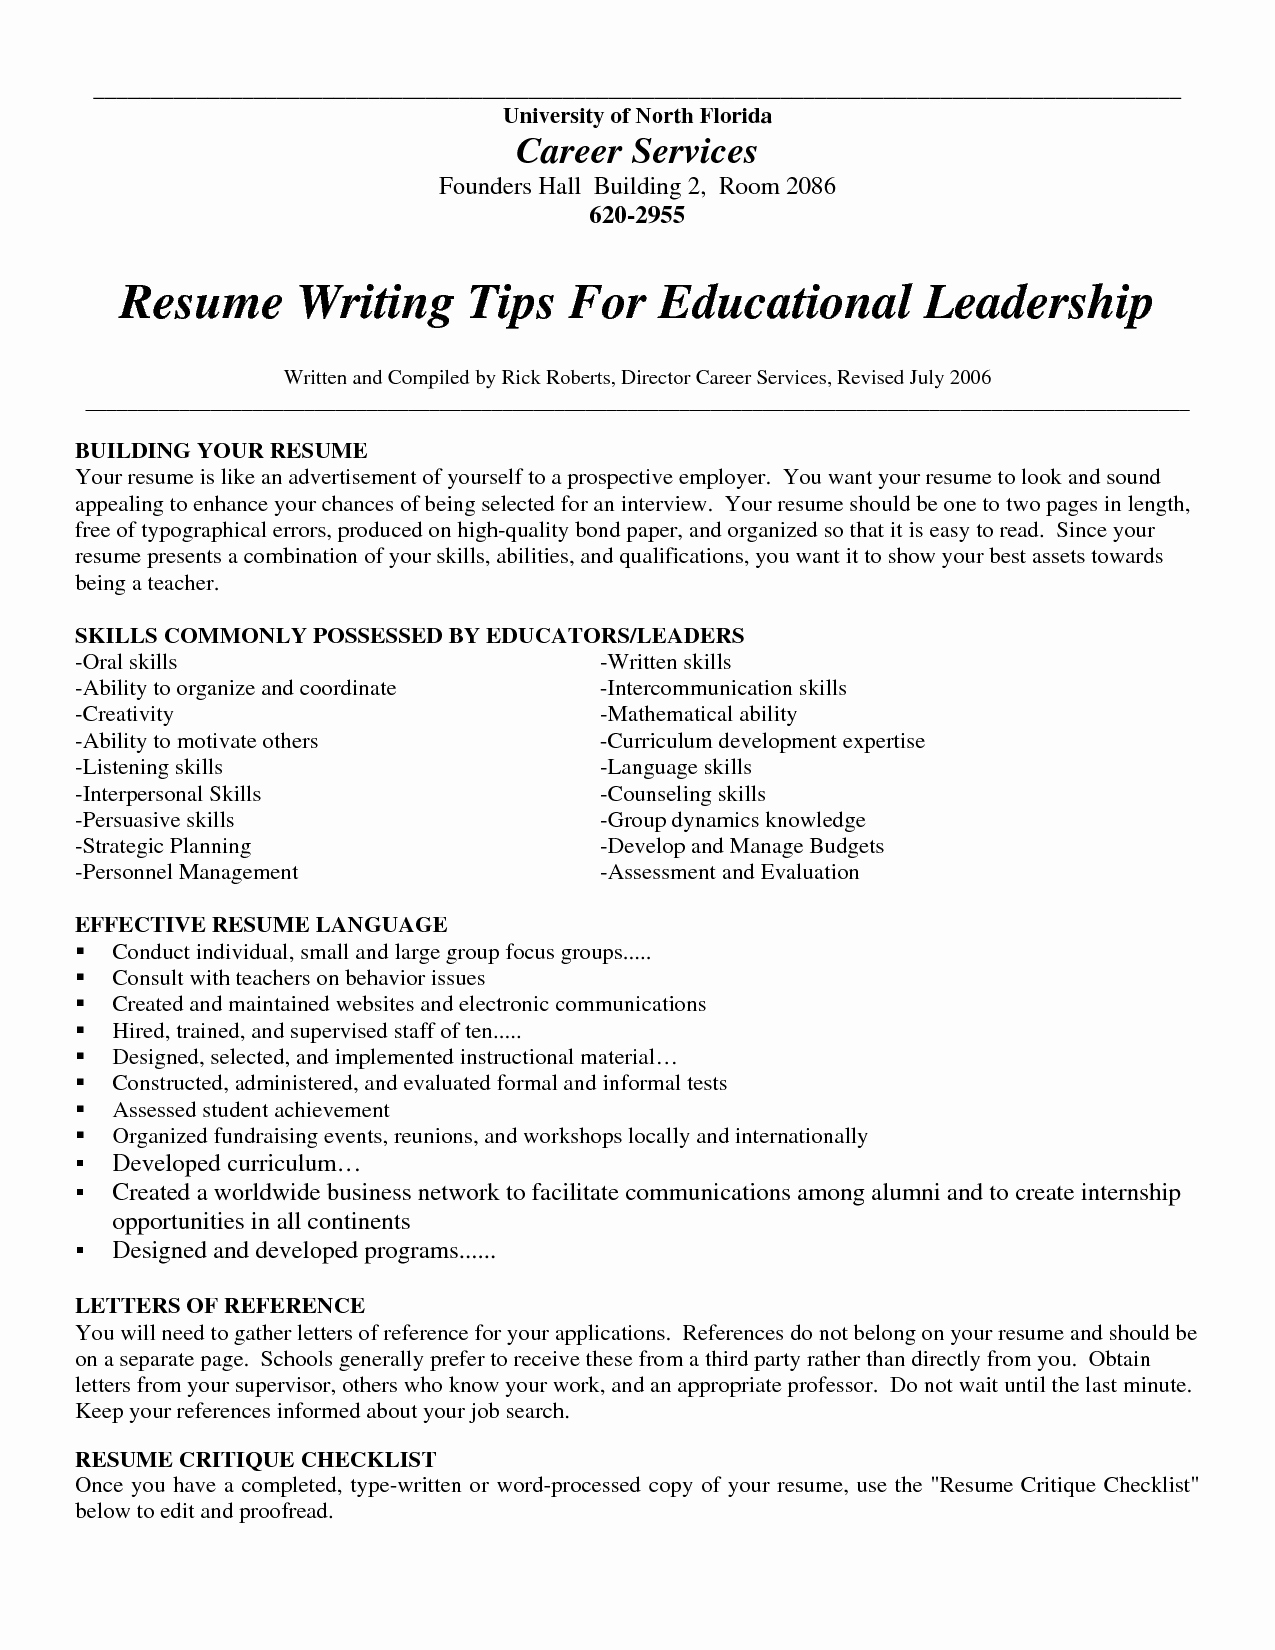 002 Essay Professor Resume Format For Assistant Job Awesome Pro Life On College Indent Cultur Writing Amazing Teaching My In French Full